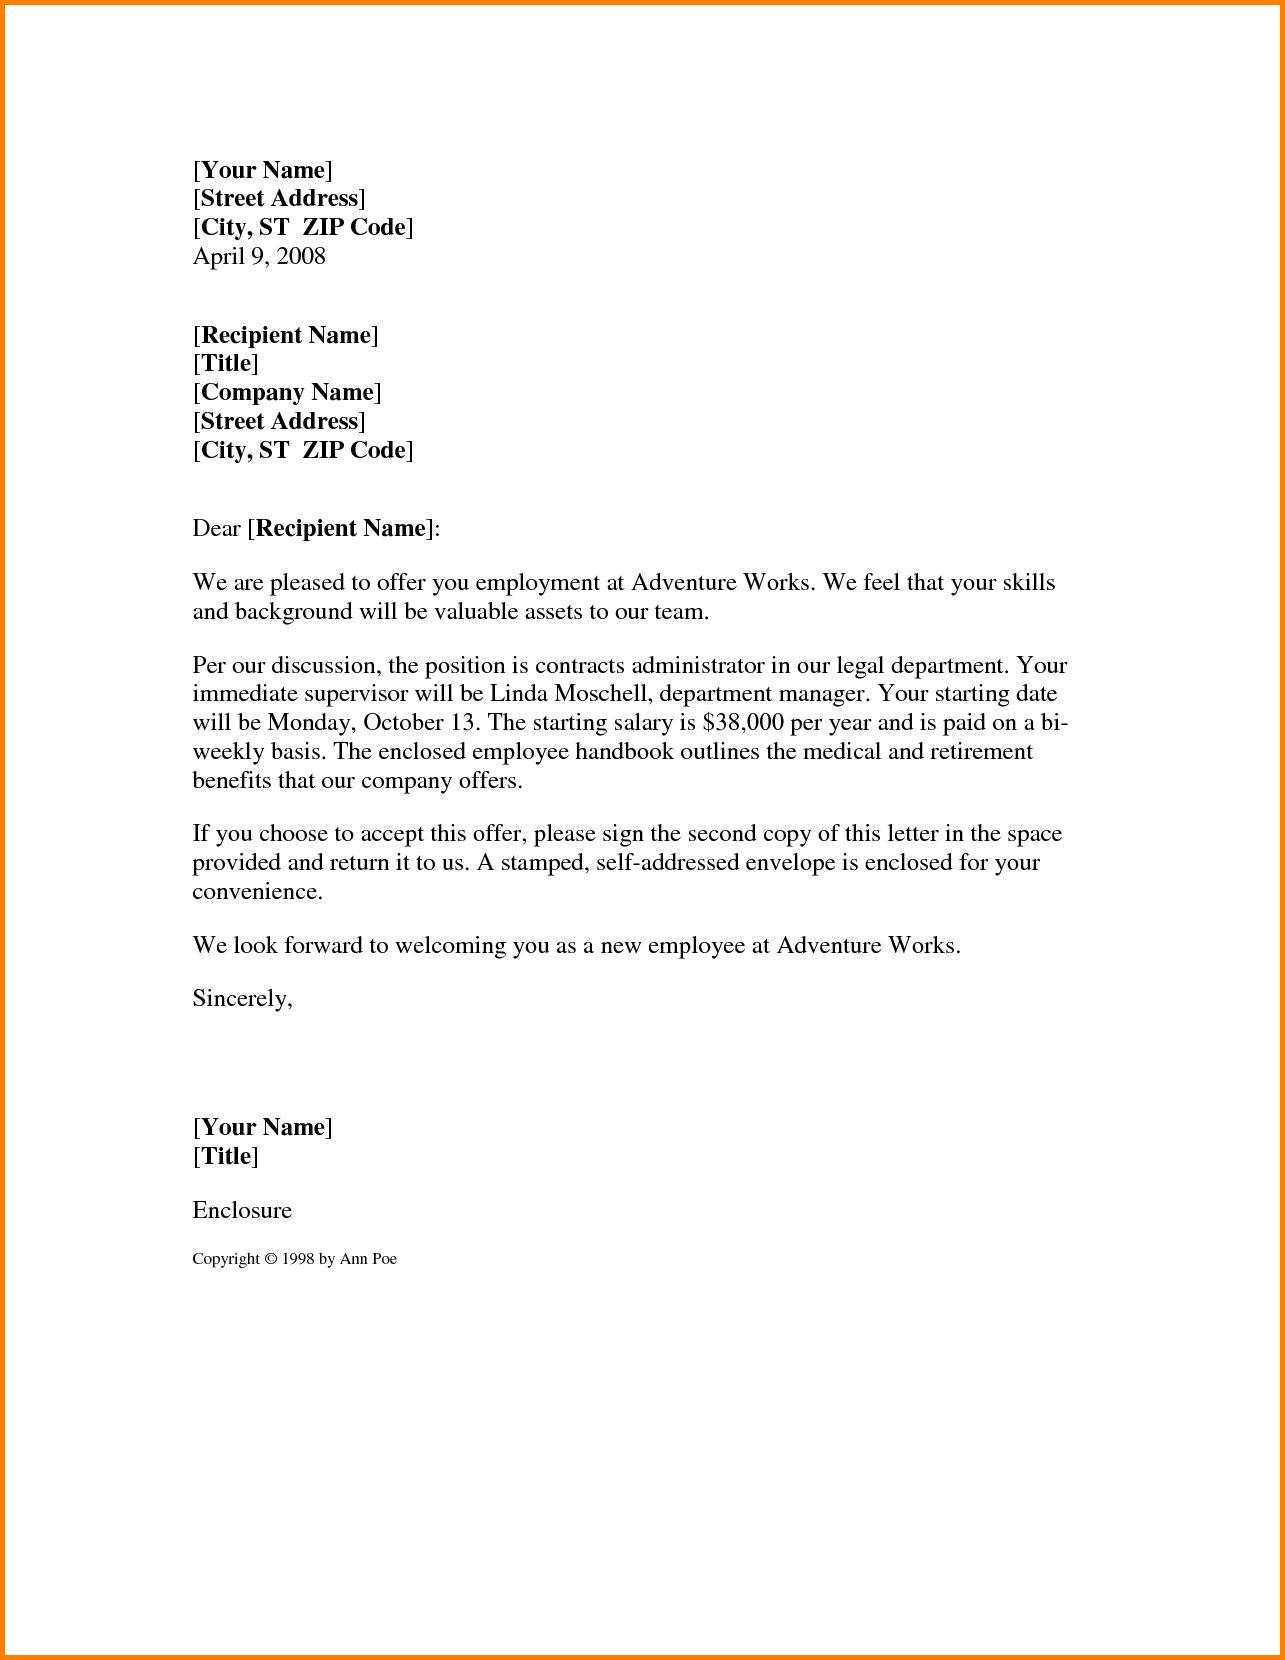 Letter Templates Employee Reference Template Job Offer Redundancy